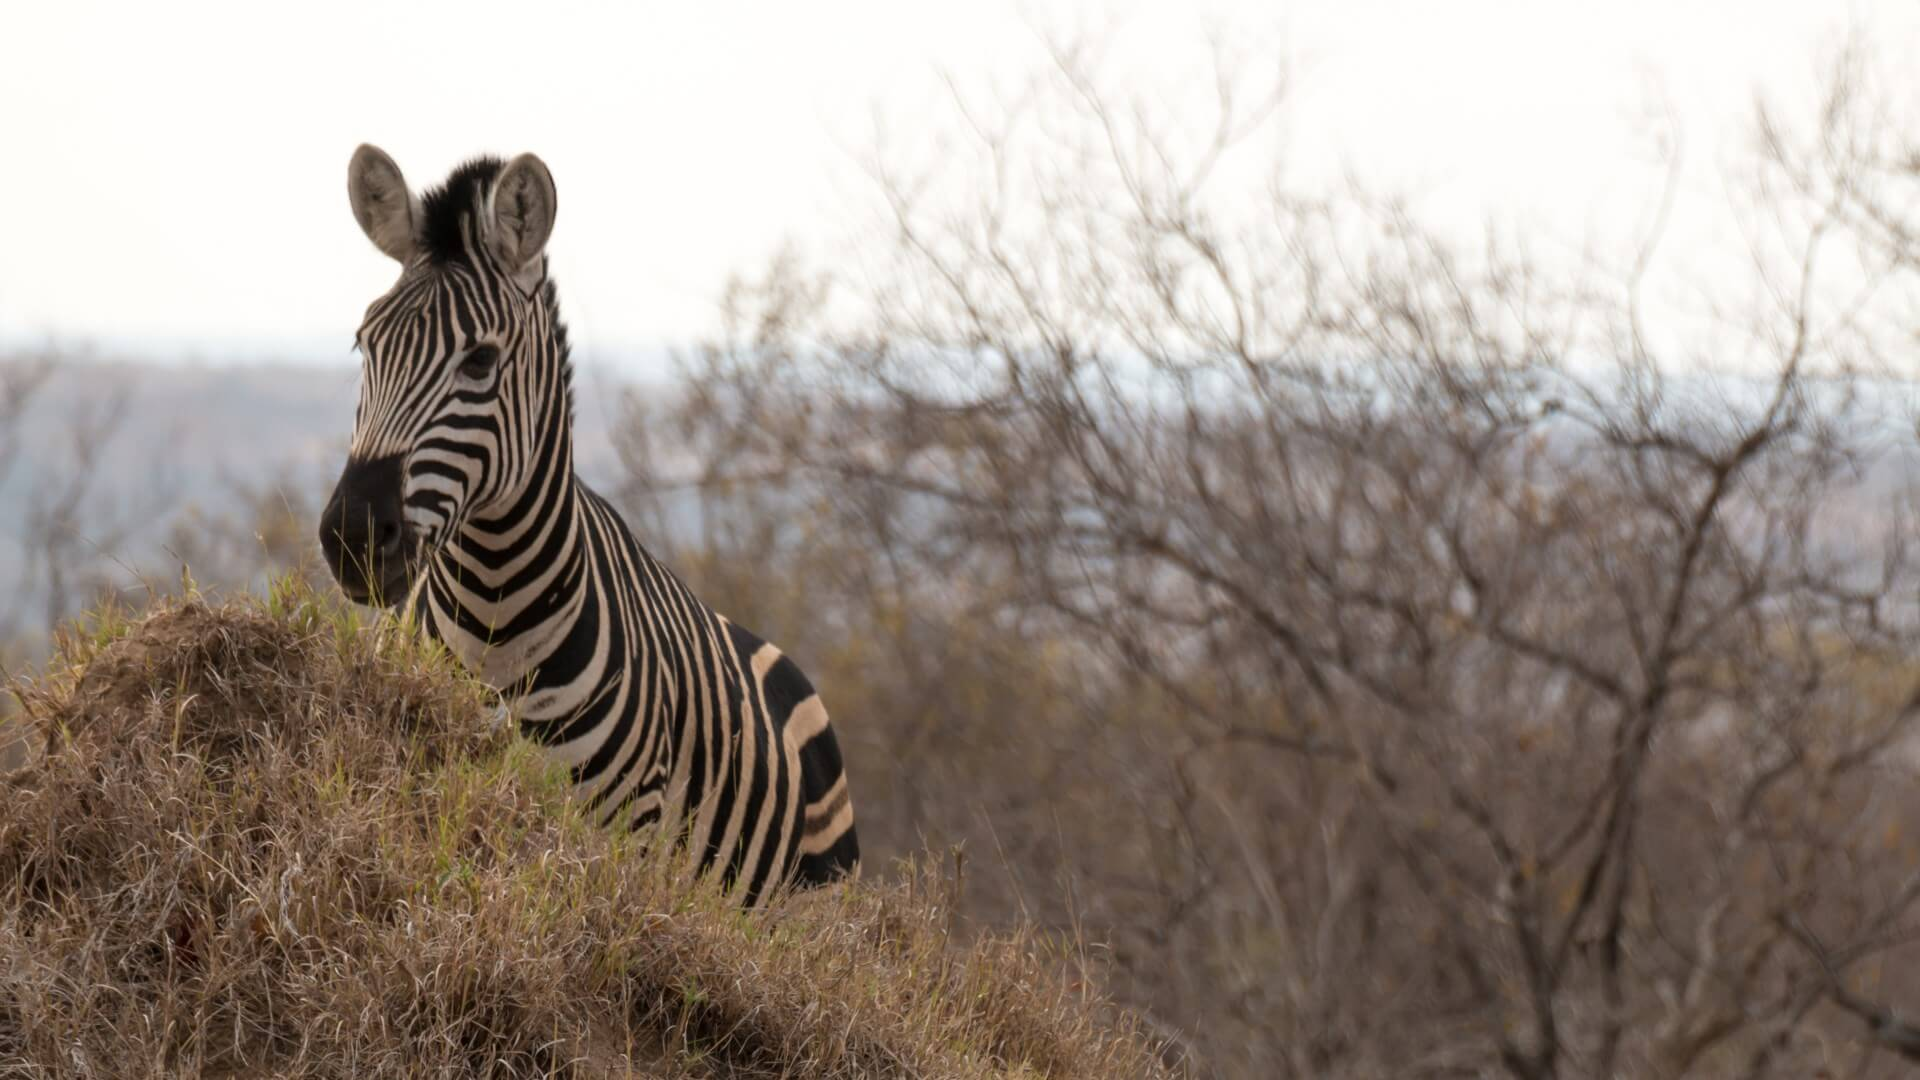 Zebra in autumnal area, Kruger National Park, South Africa